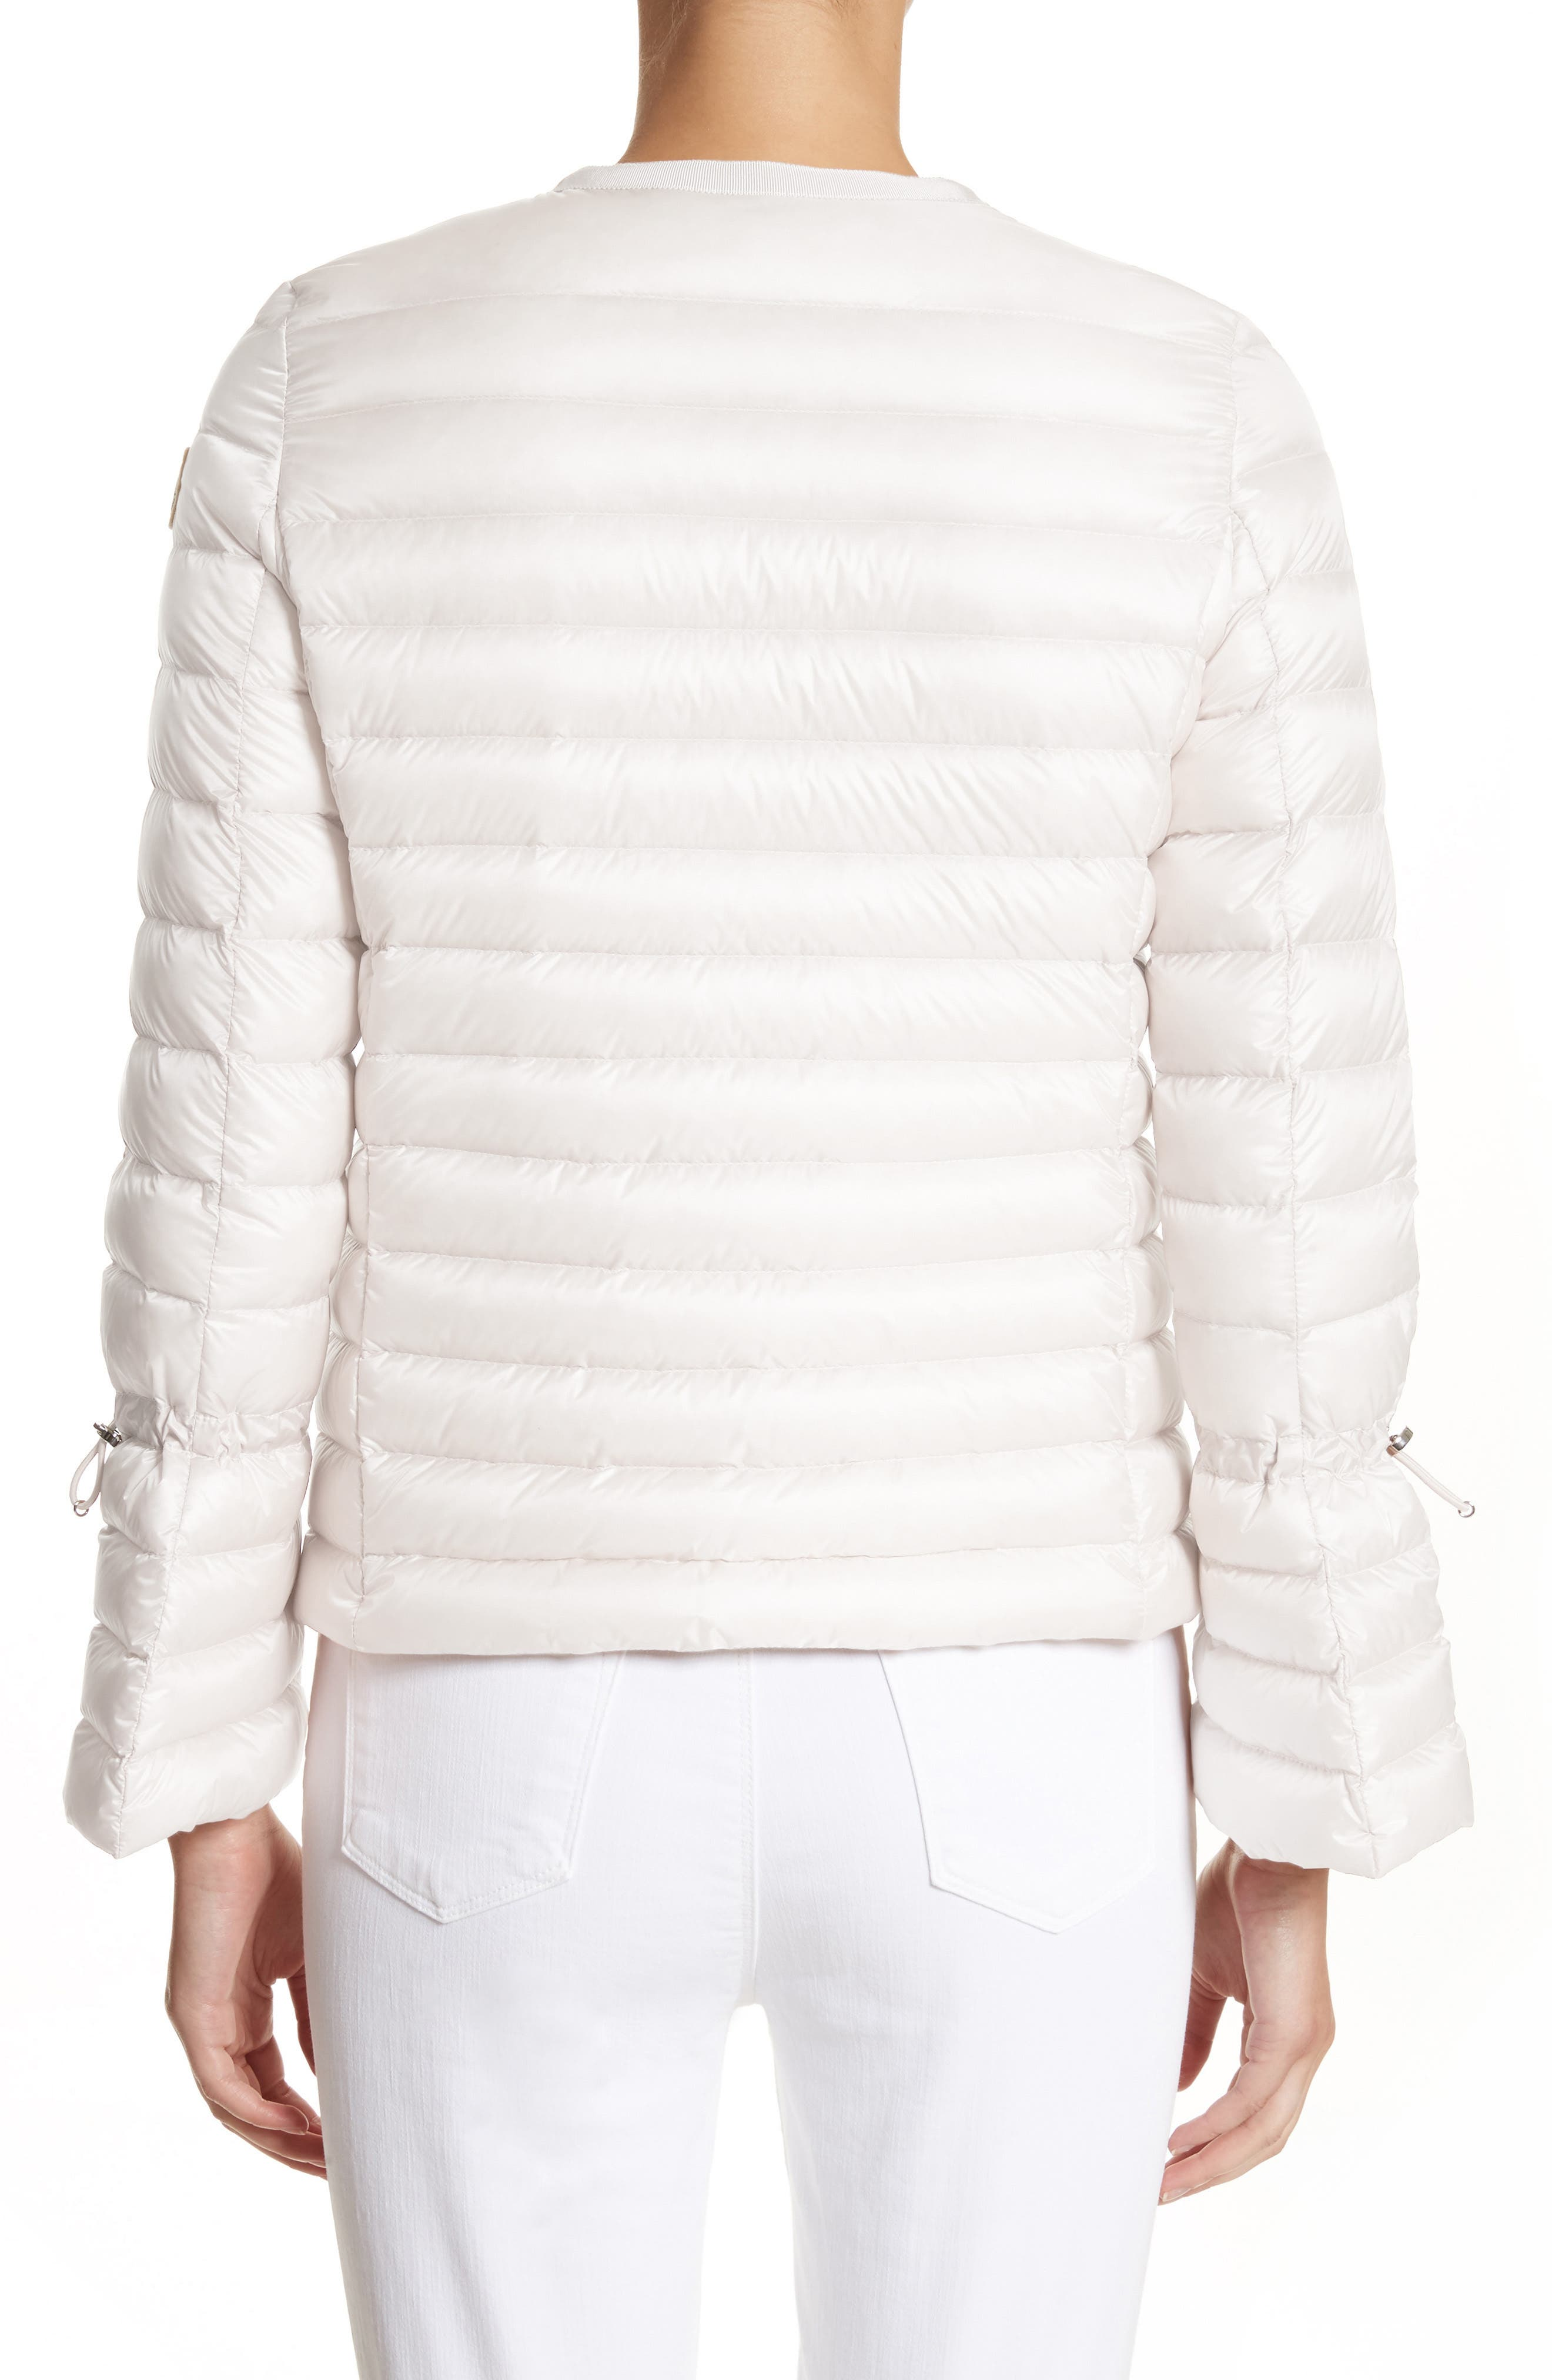 Almandin Quilted Puffer Jacket,                             Alternate thumbnail 2, color,                             101